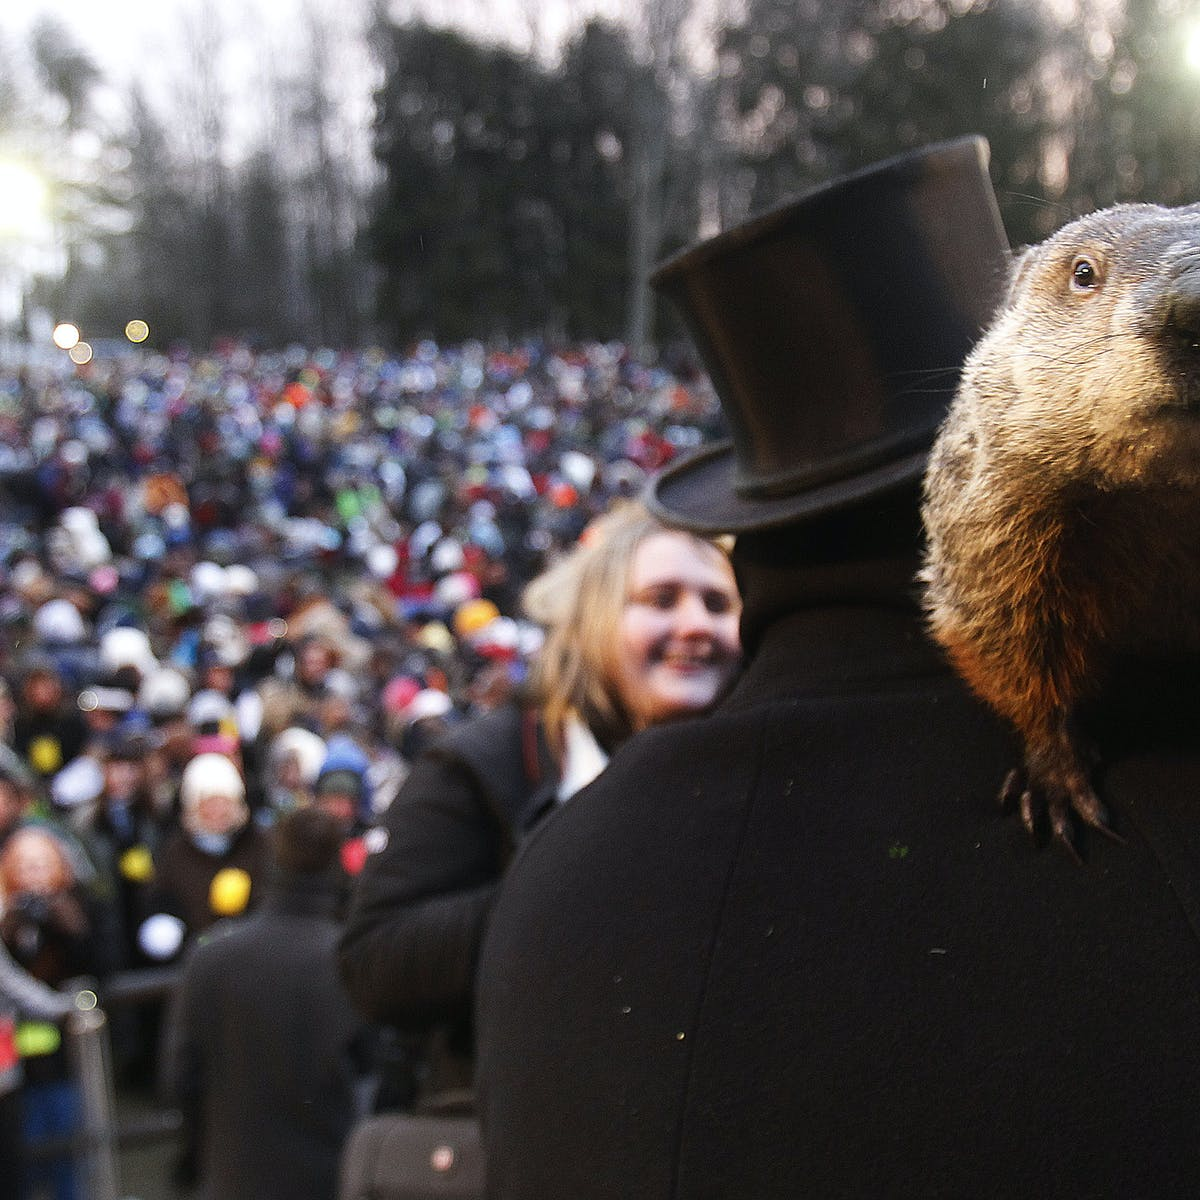 Why do groundhogs emerge on February 2 if it's not to